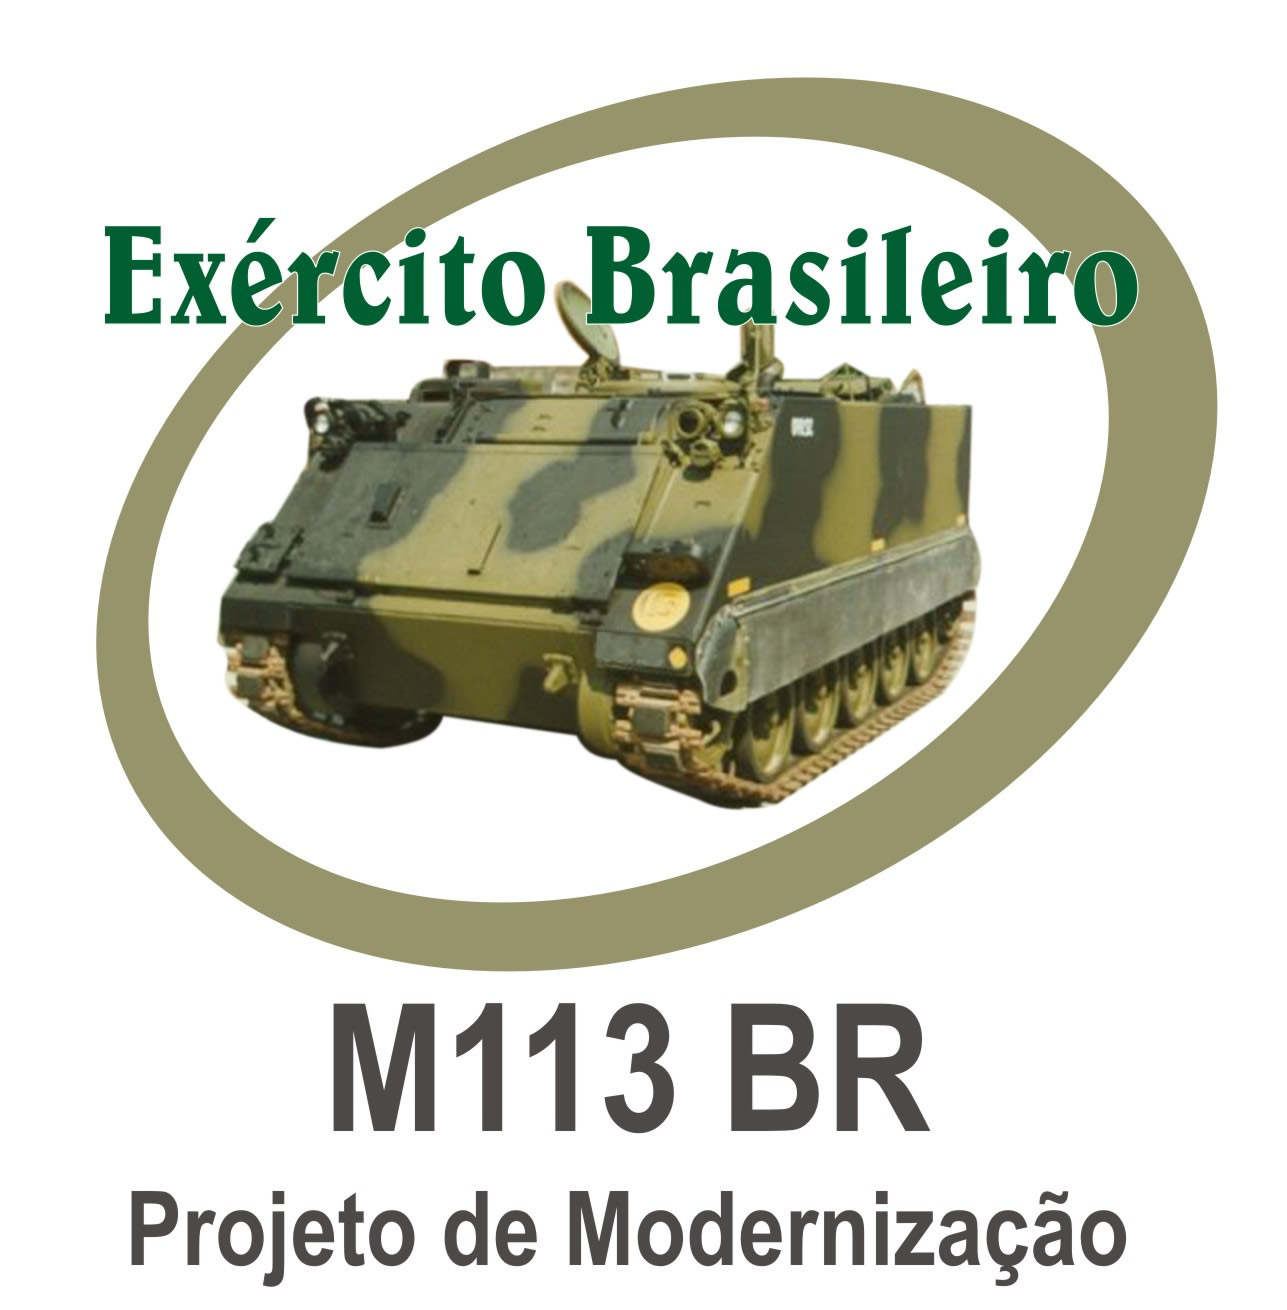 ARLINGTON, Virginia – BAE Systems, in partnership with the Brazilian Army are upgrading 150 M113 armored personnel carriers for Brazil through a foreign military sales contract worth $41.9 million